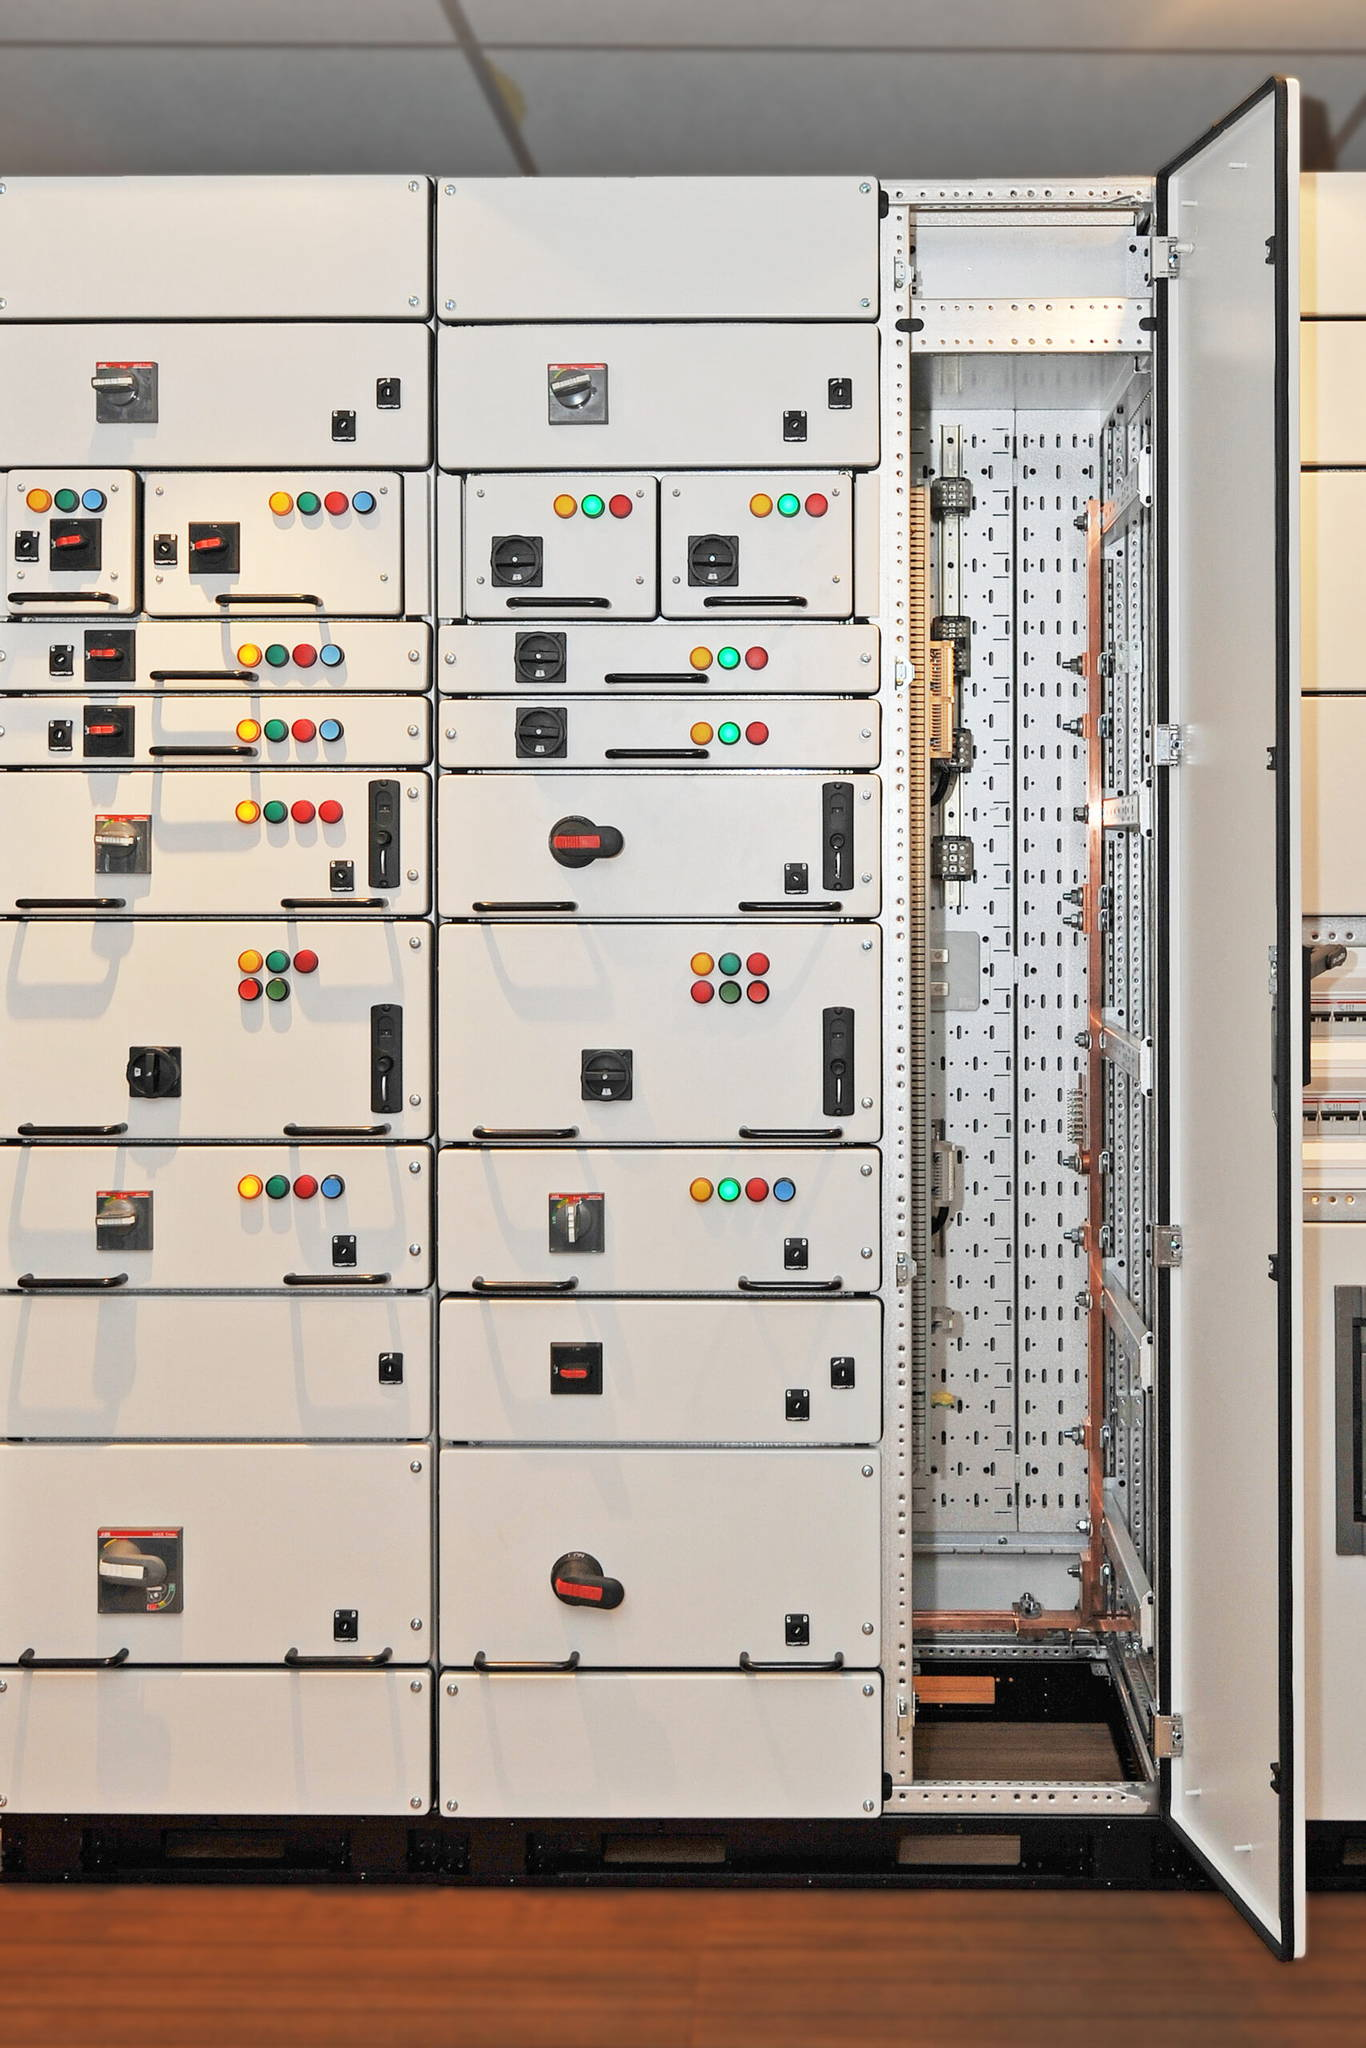 Bright picture of Logstrup Switchboard, WDU and others, Cabelsection